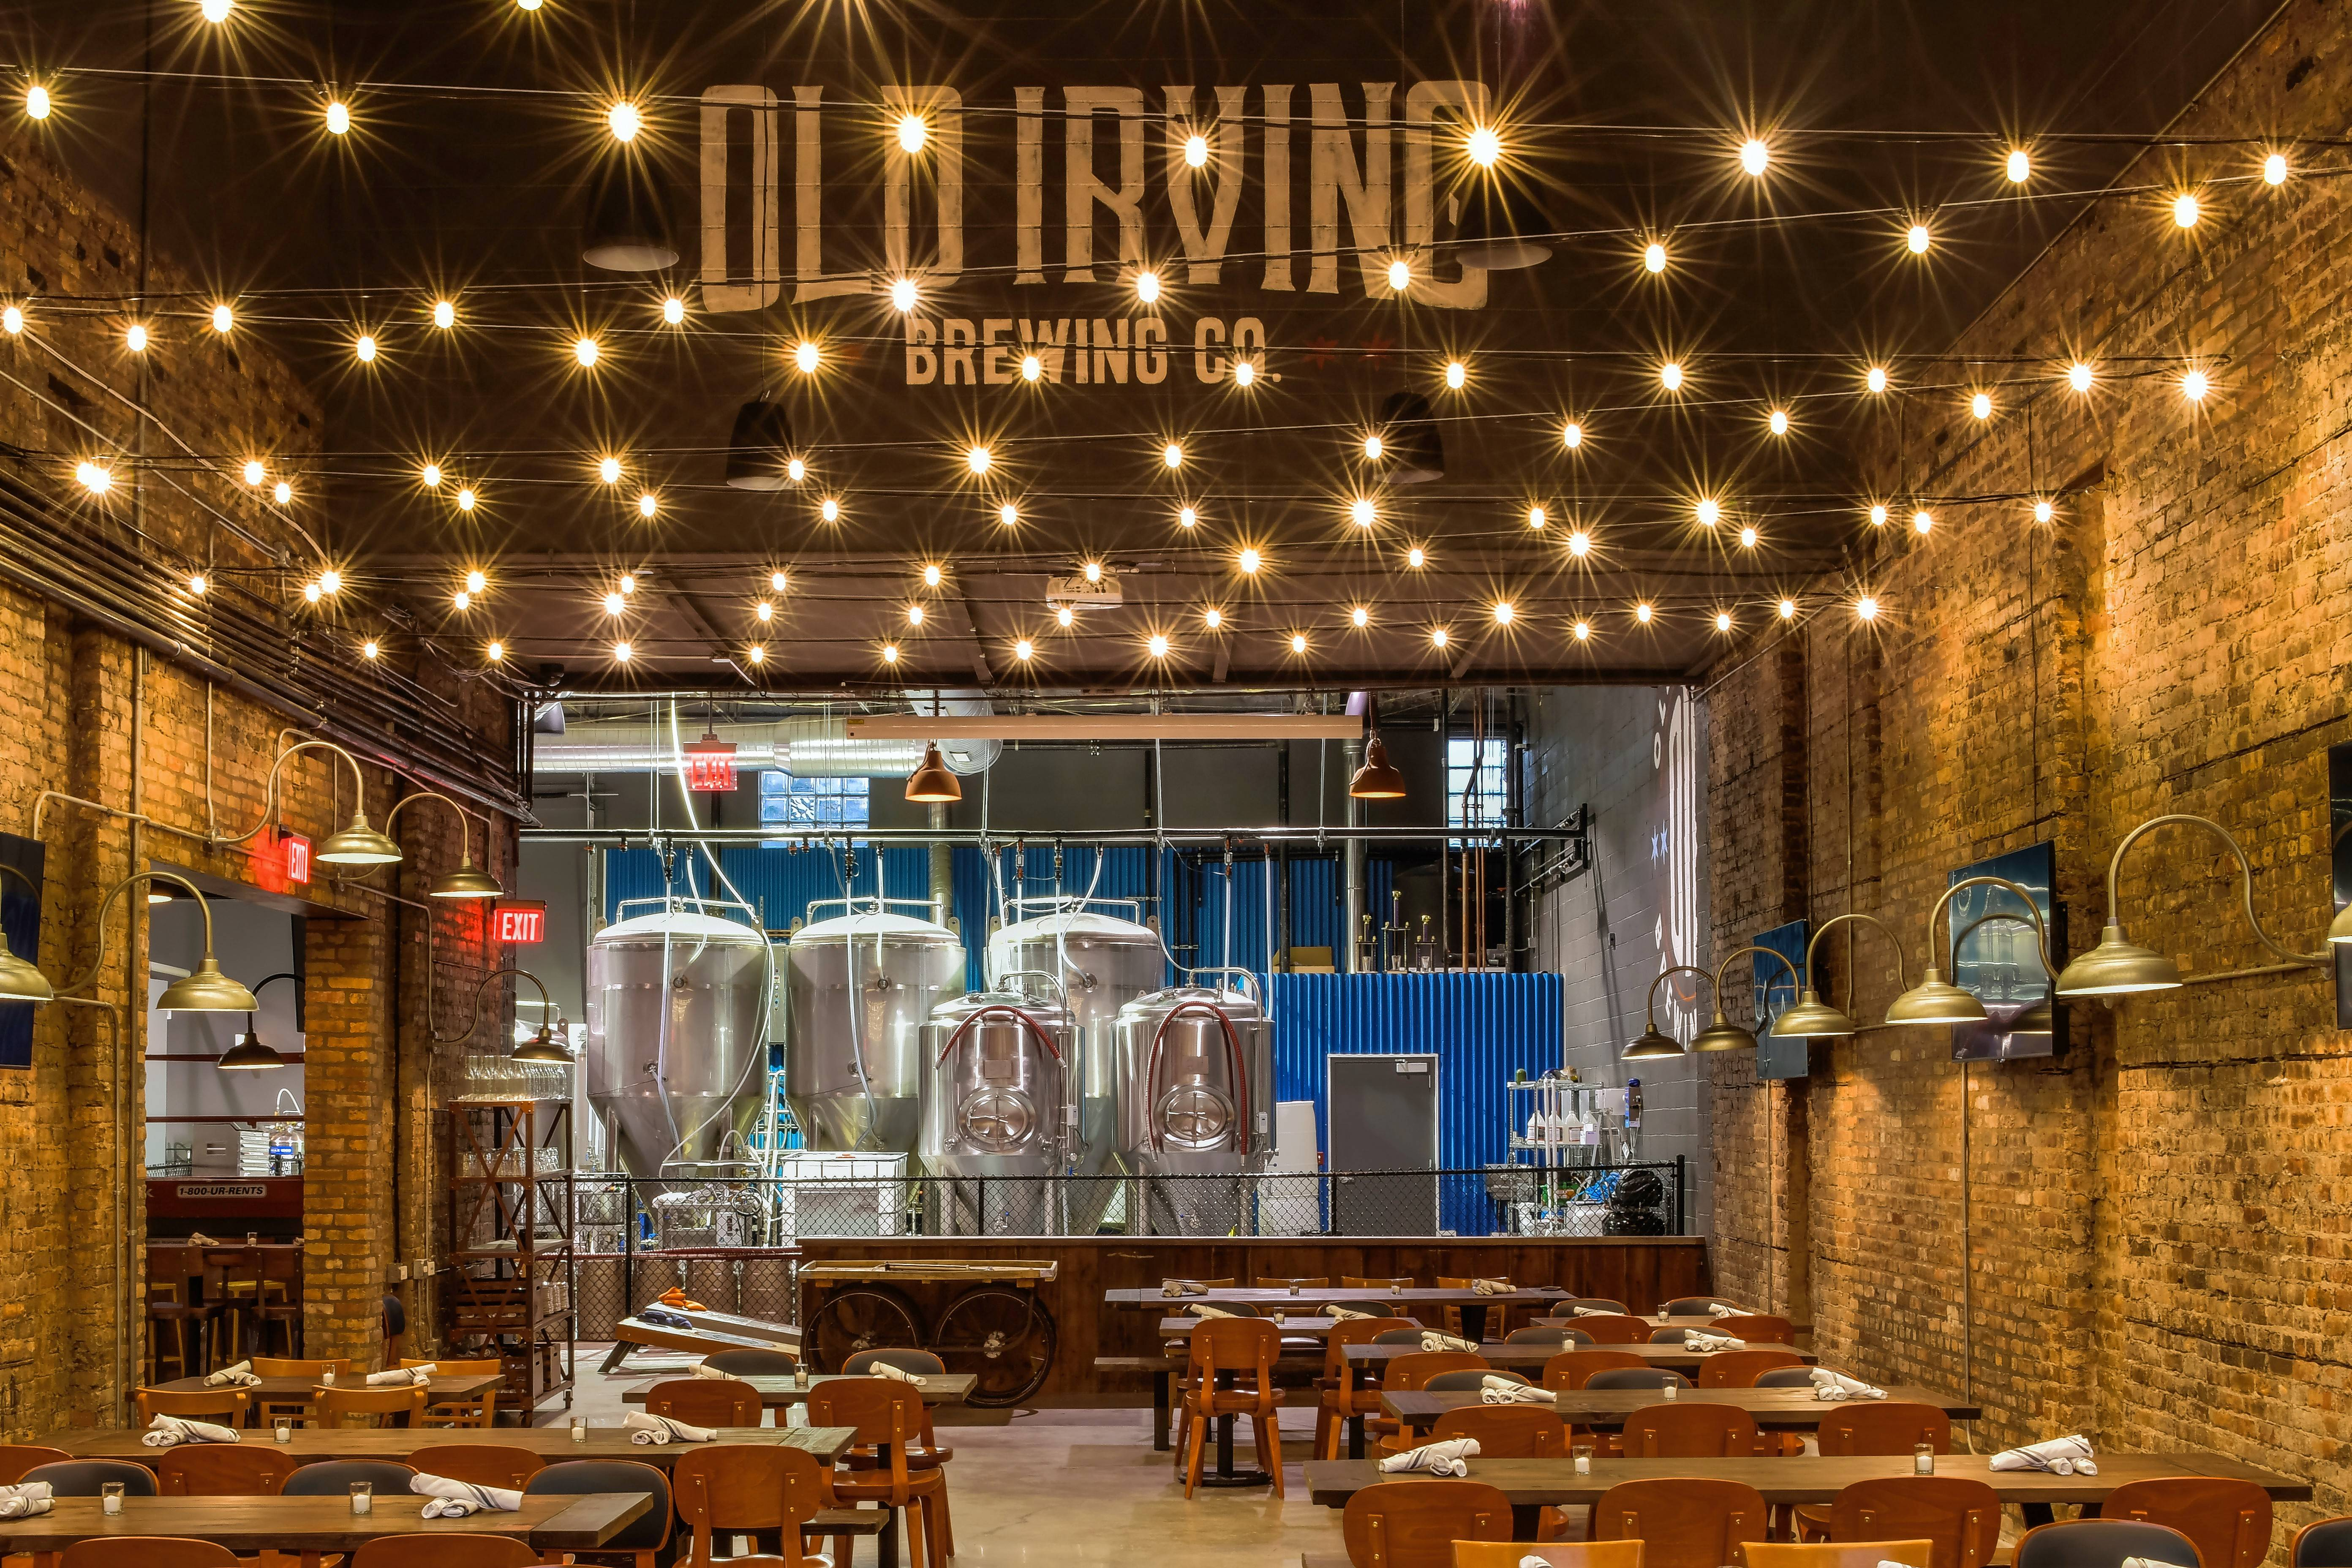 Old Irving Brewing Co. in Chicago offers a spacious brewpub serving wood-fired fare.